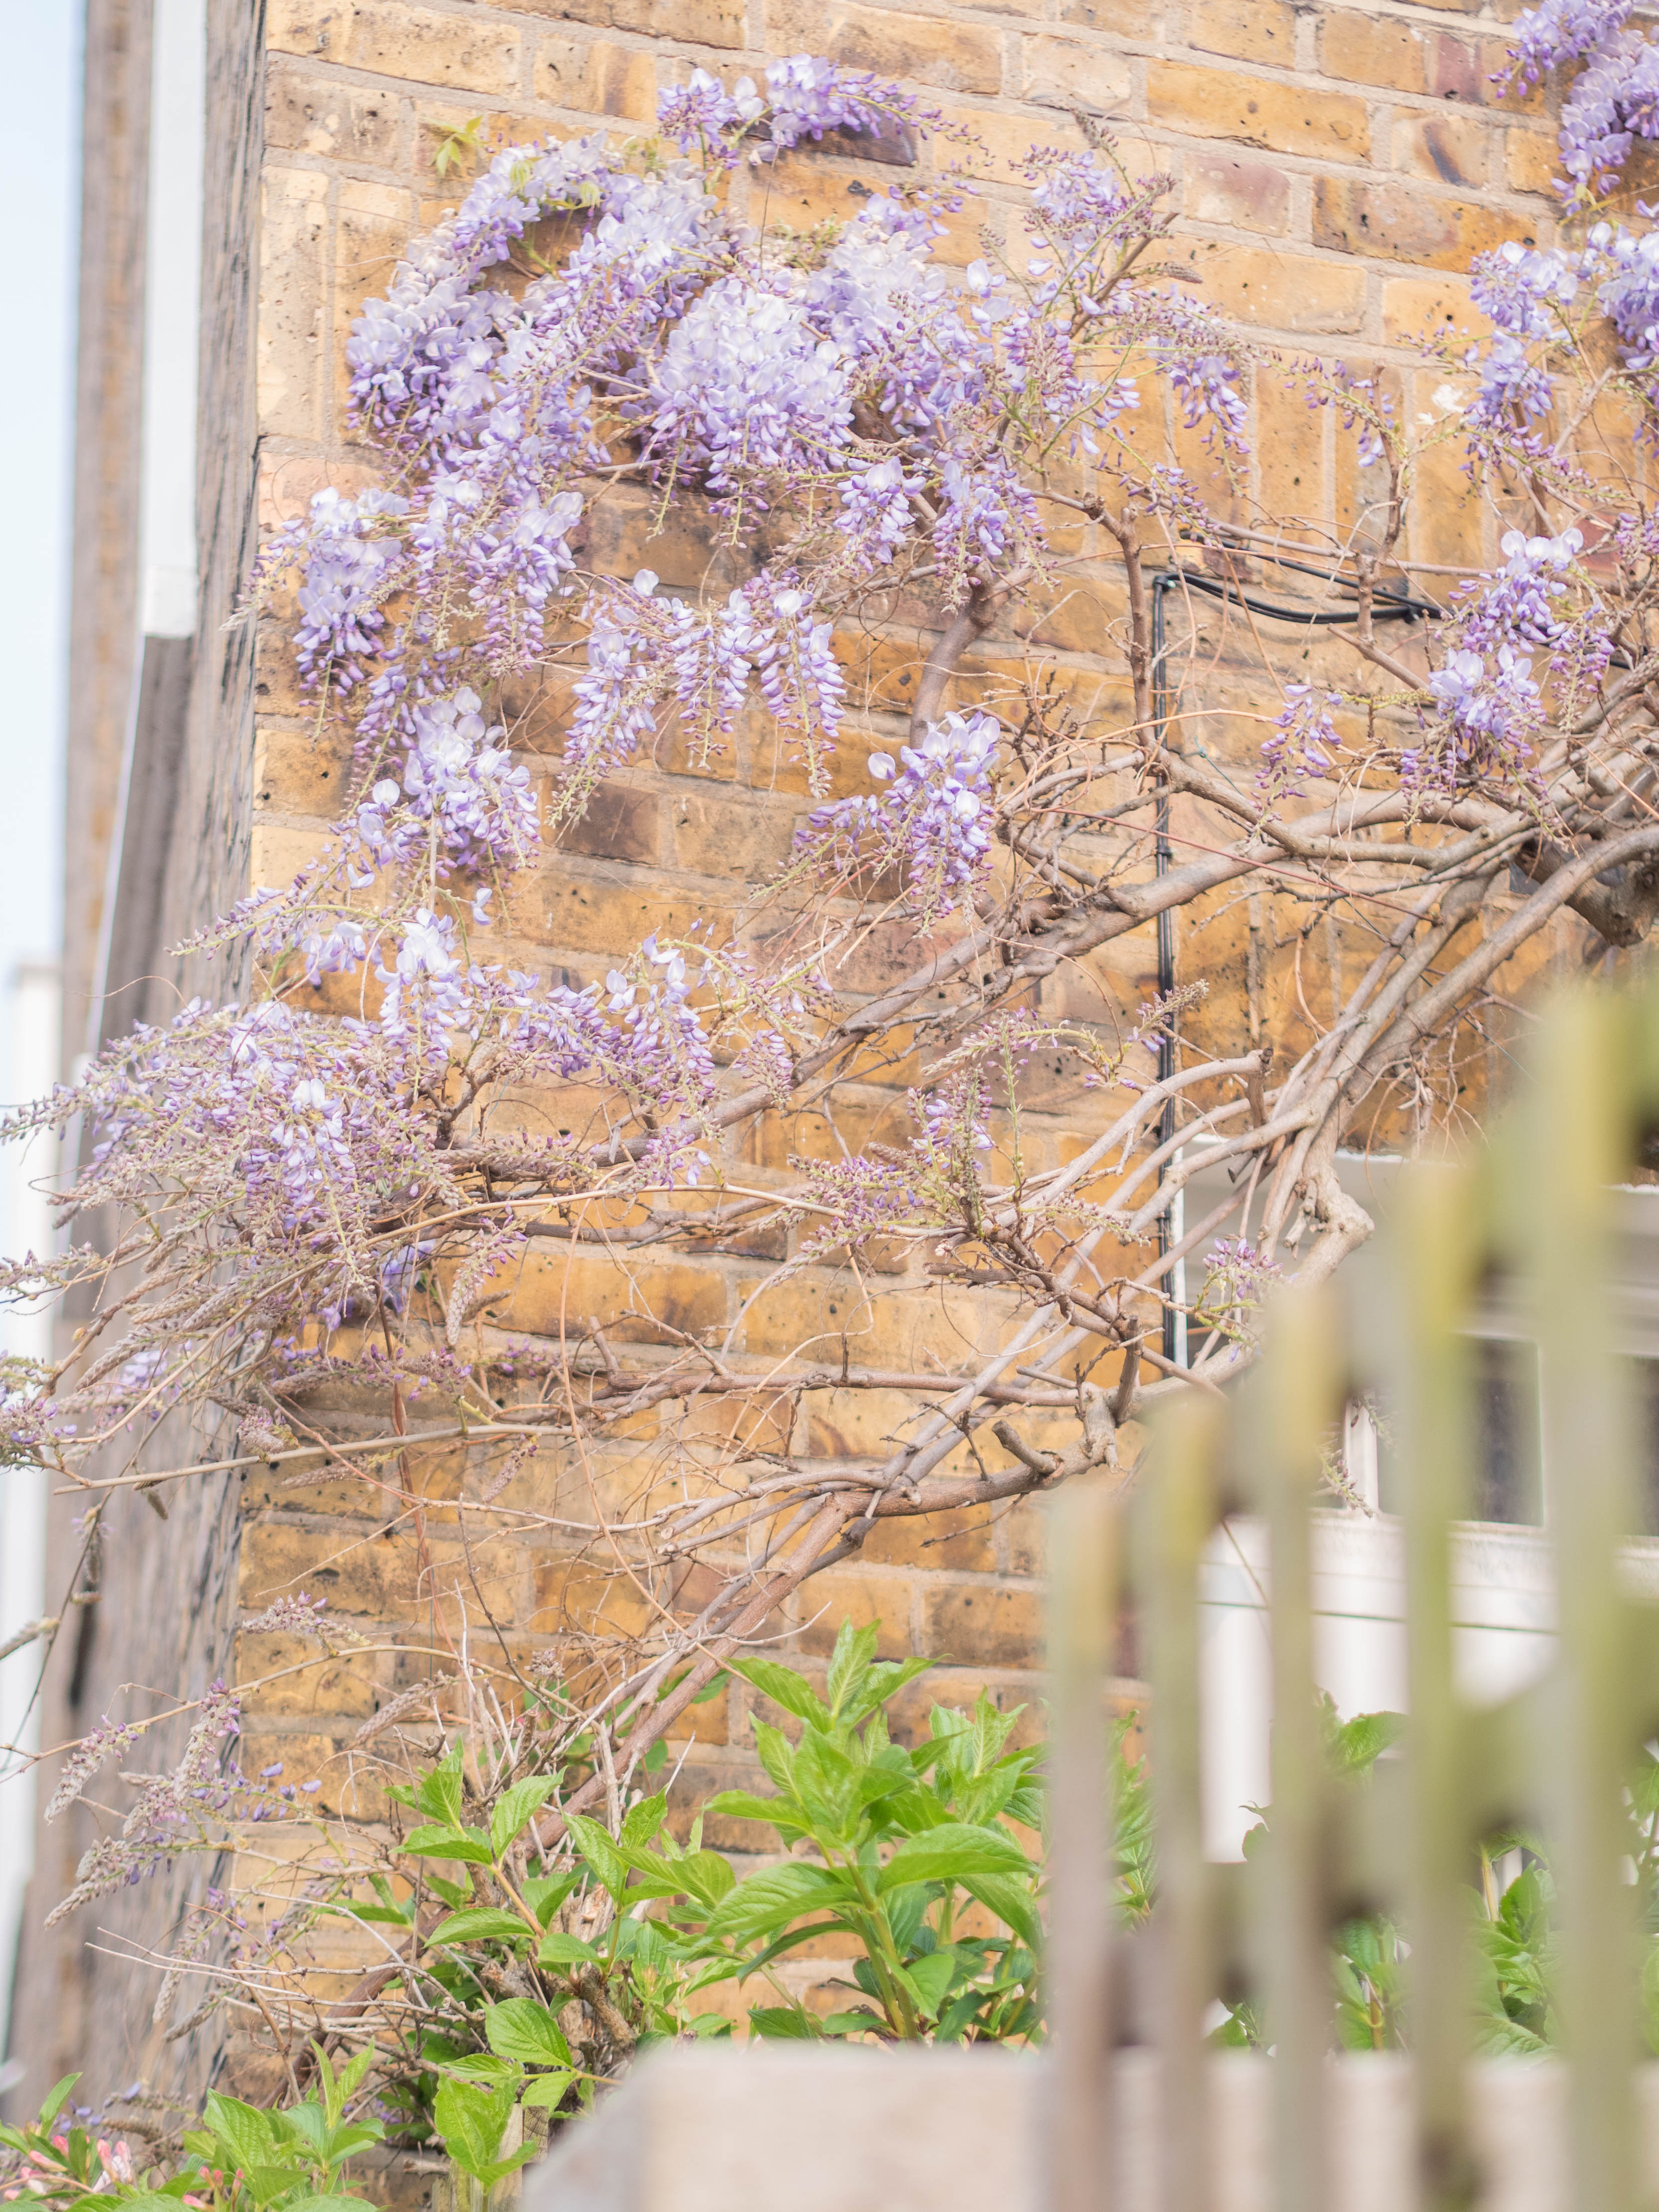 Wisteria, growing up the side of a house, starts to bloom.